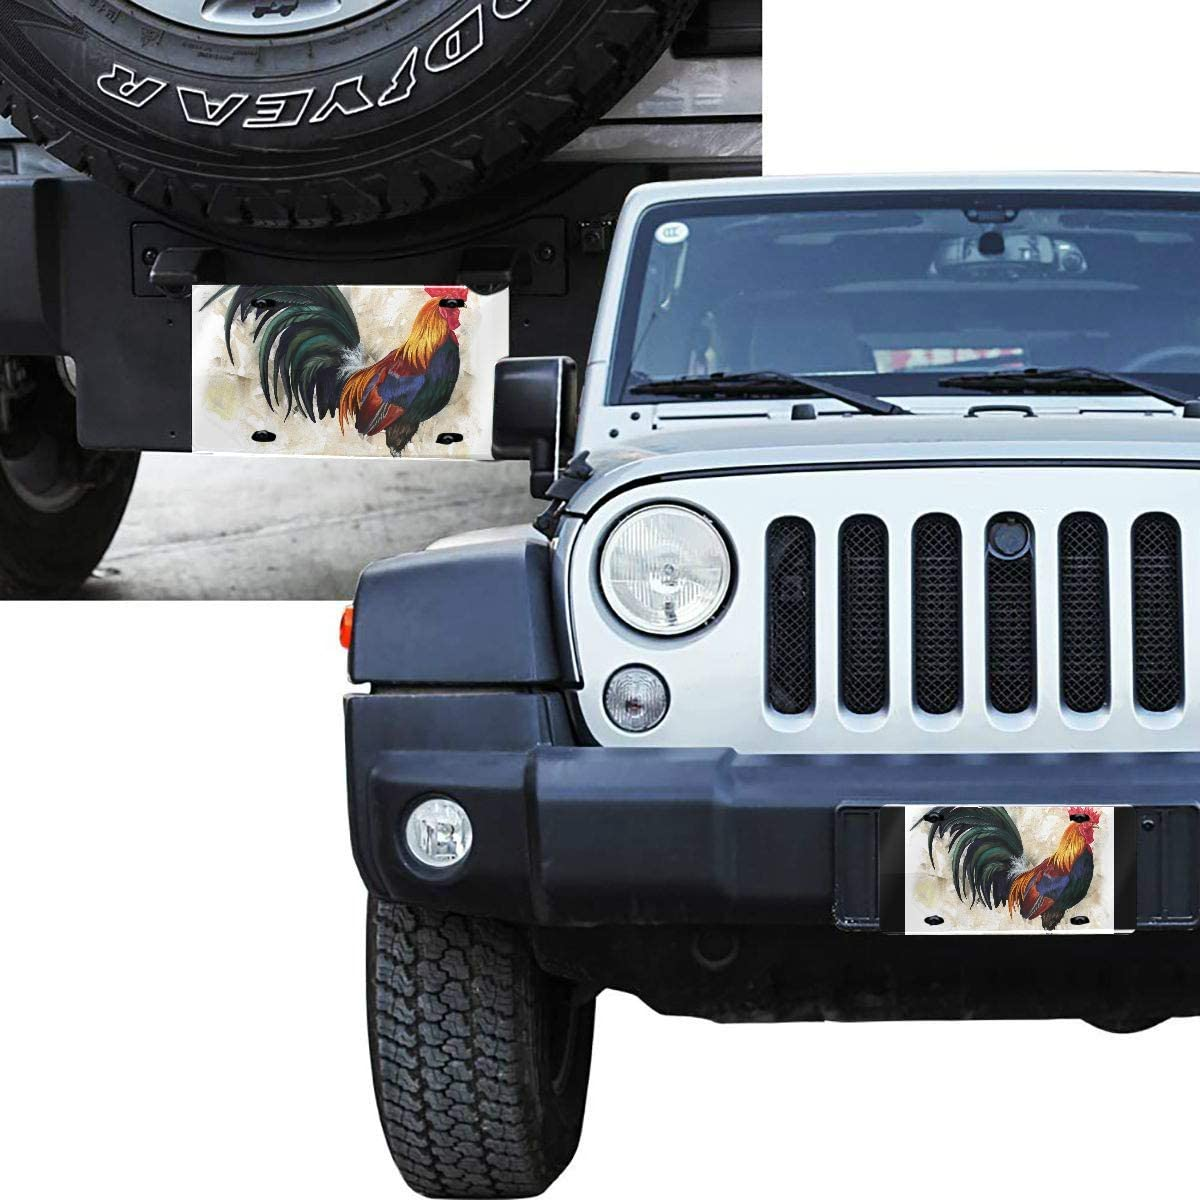 4 Hole Custom Packers License Plate Vanity Tag Aluminum Car Accessories Novelty Custom Front License Plate Rooster Digital Painting Rooster Cock Print License Plate Metal 6x12 in